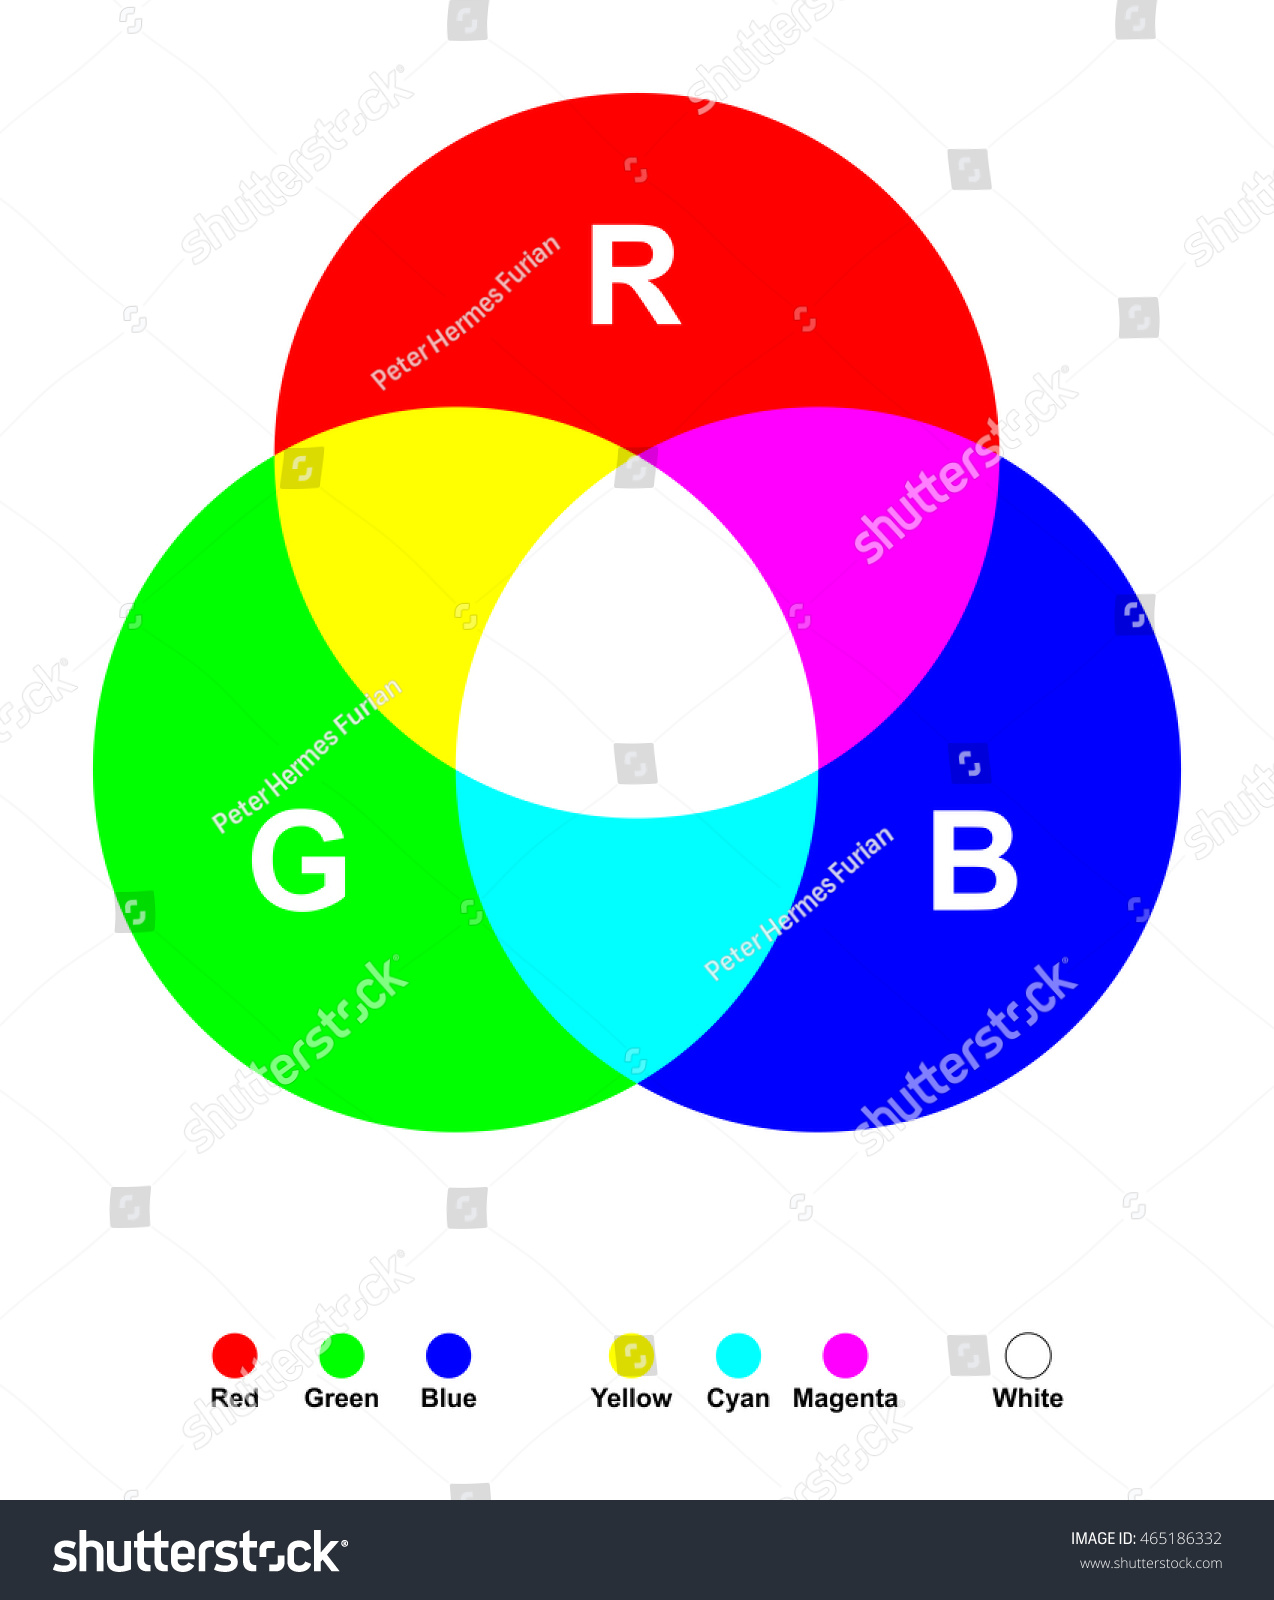 Additive color mixing three primary light stock vector 465186332 additive color mixing three primary light colors red green and blue mixed together yields geenschuldenfo Image collections